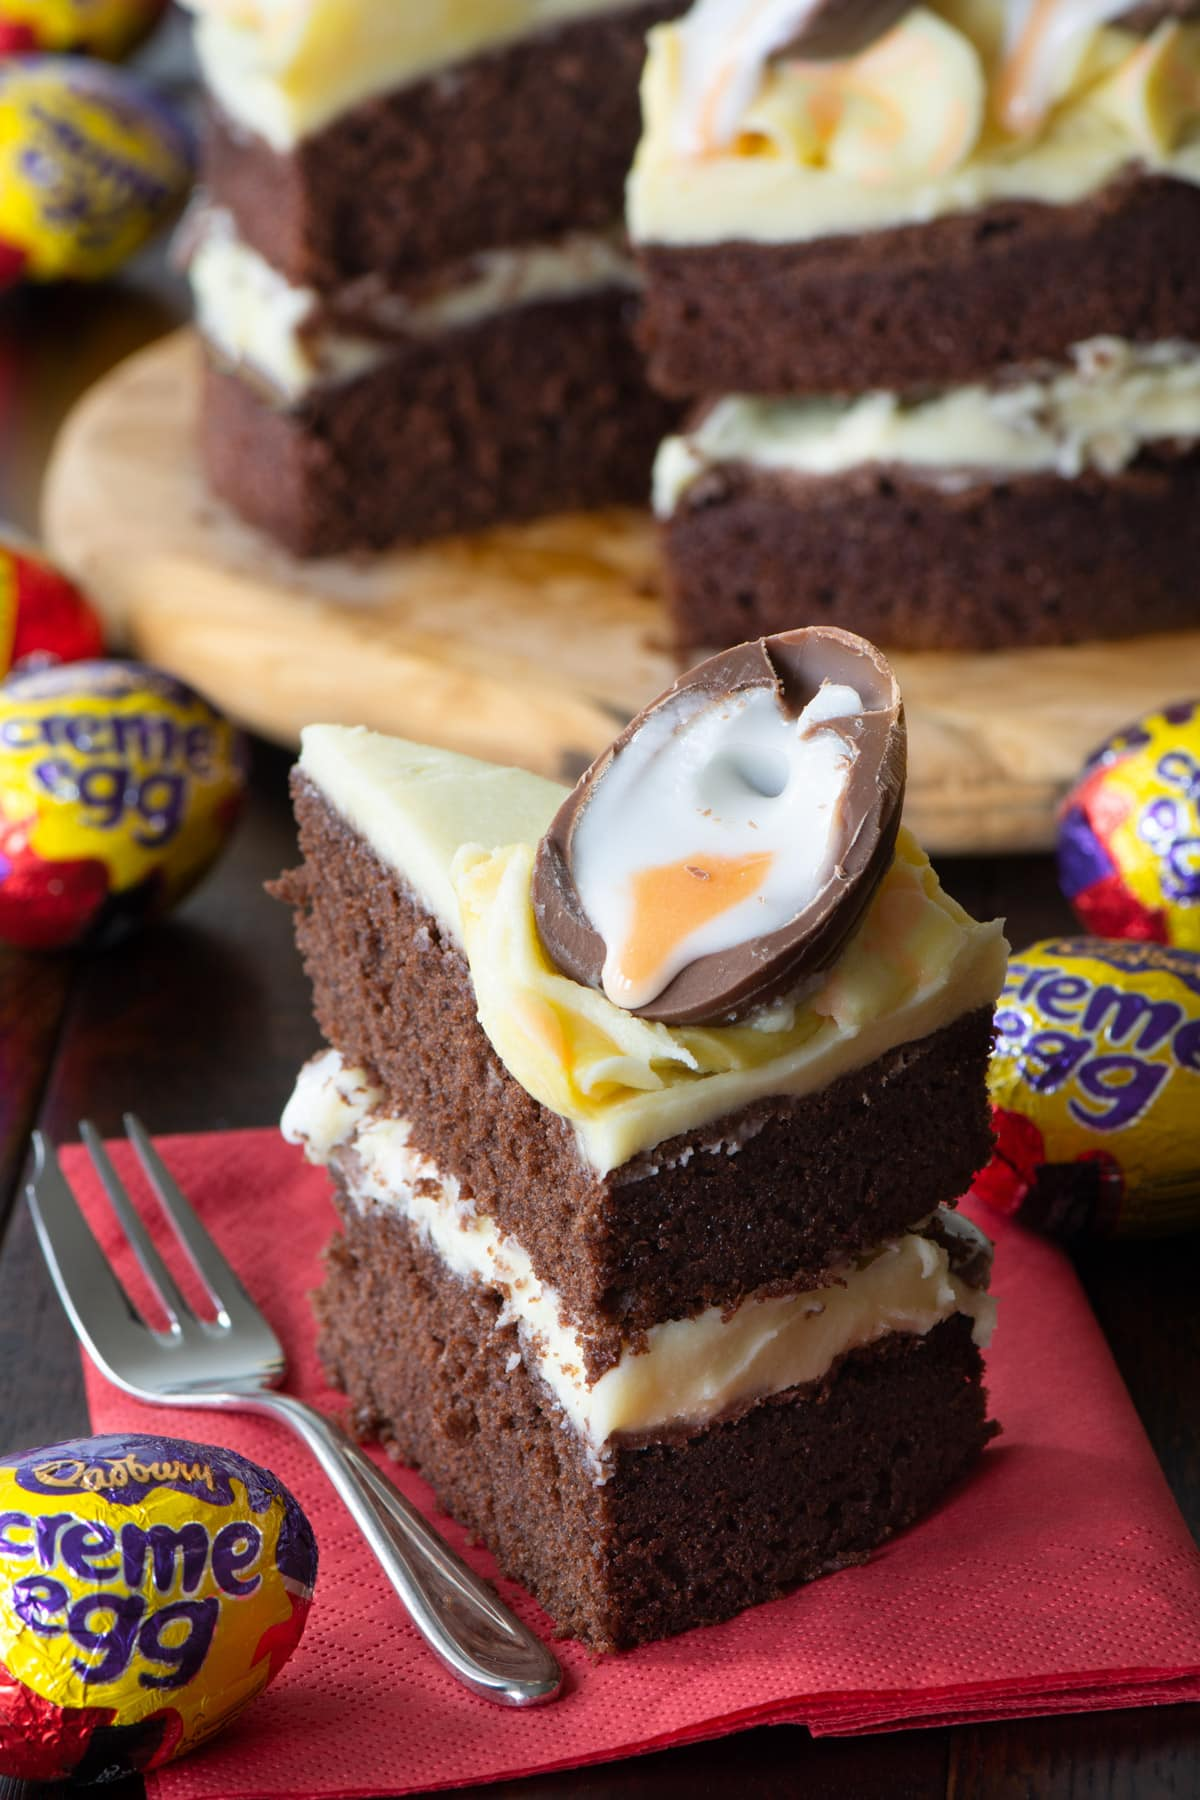 A slice of Creme Egg cake with the remaining cake in the background. A chocolate cake, with white chocolate buttercream, topped with Creme Egg halves.